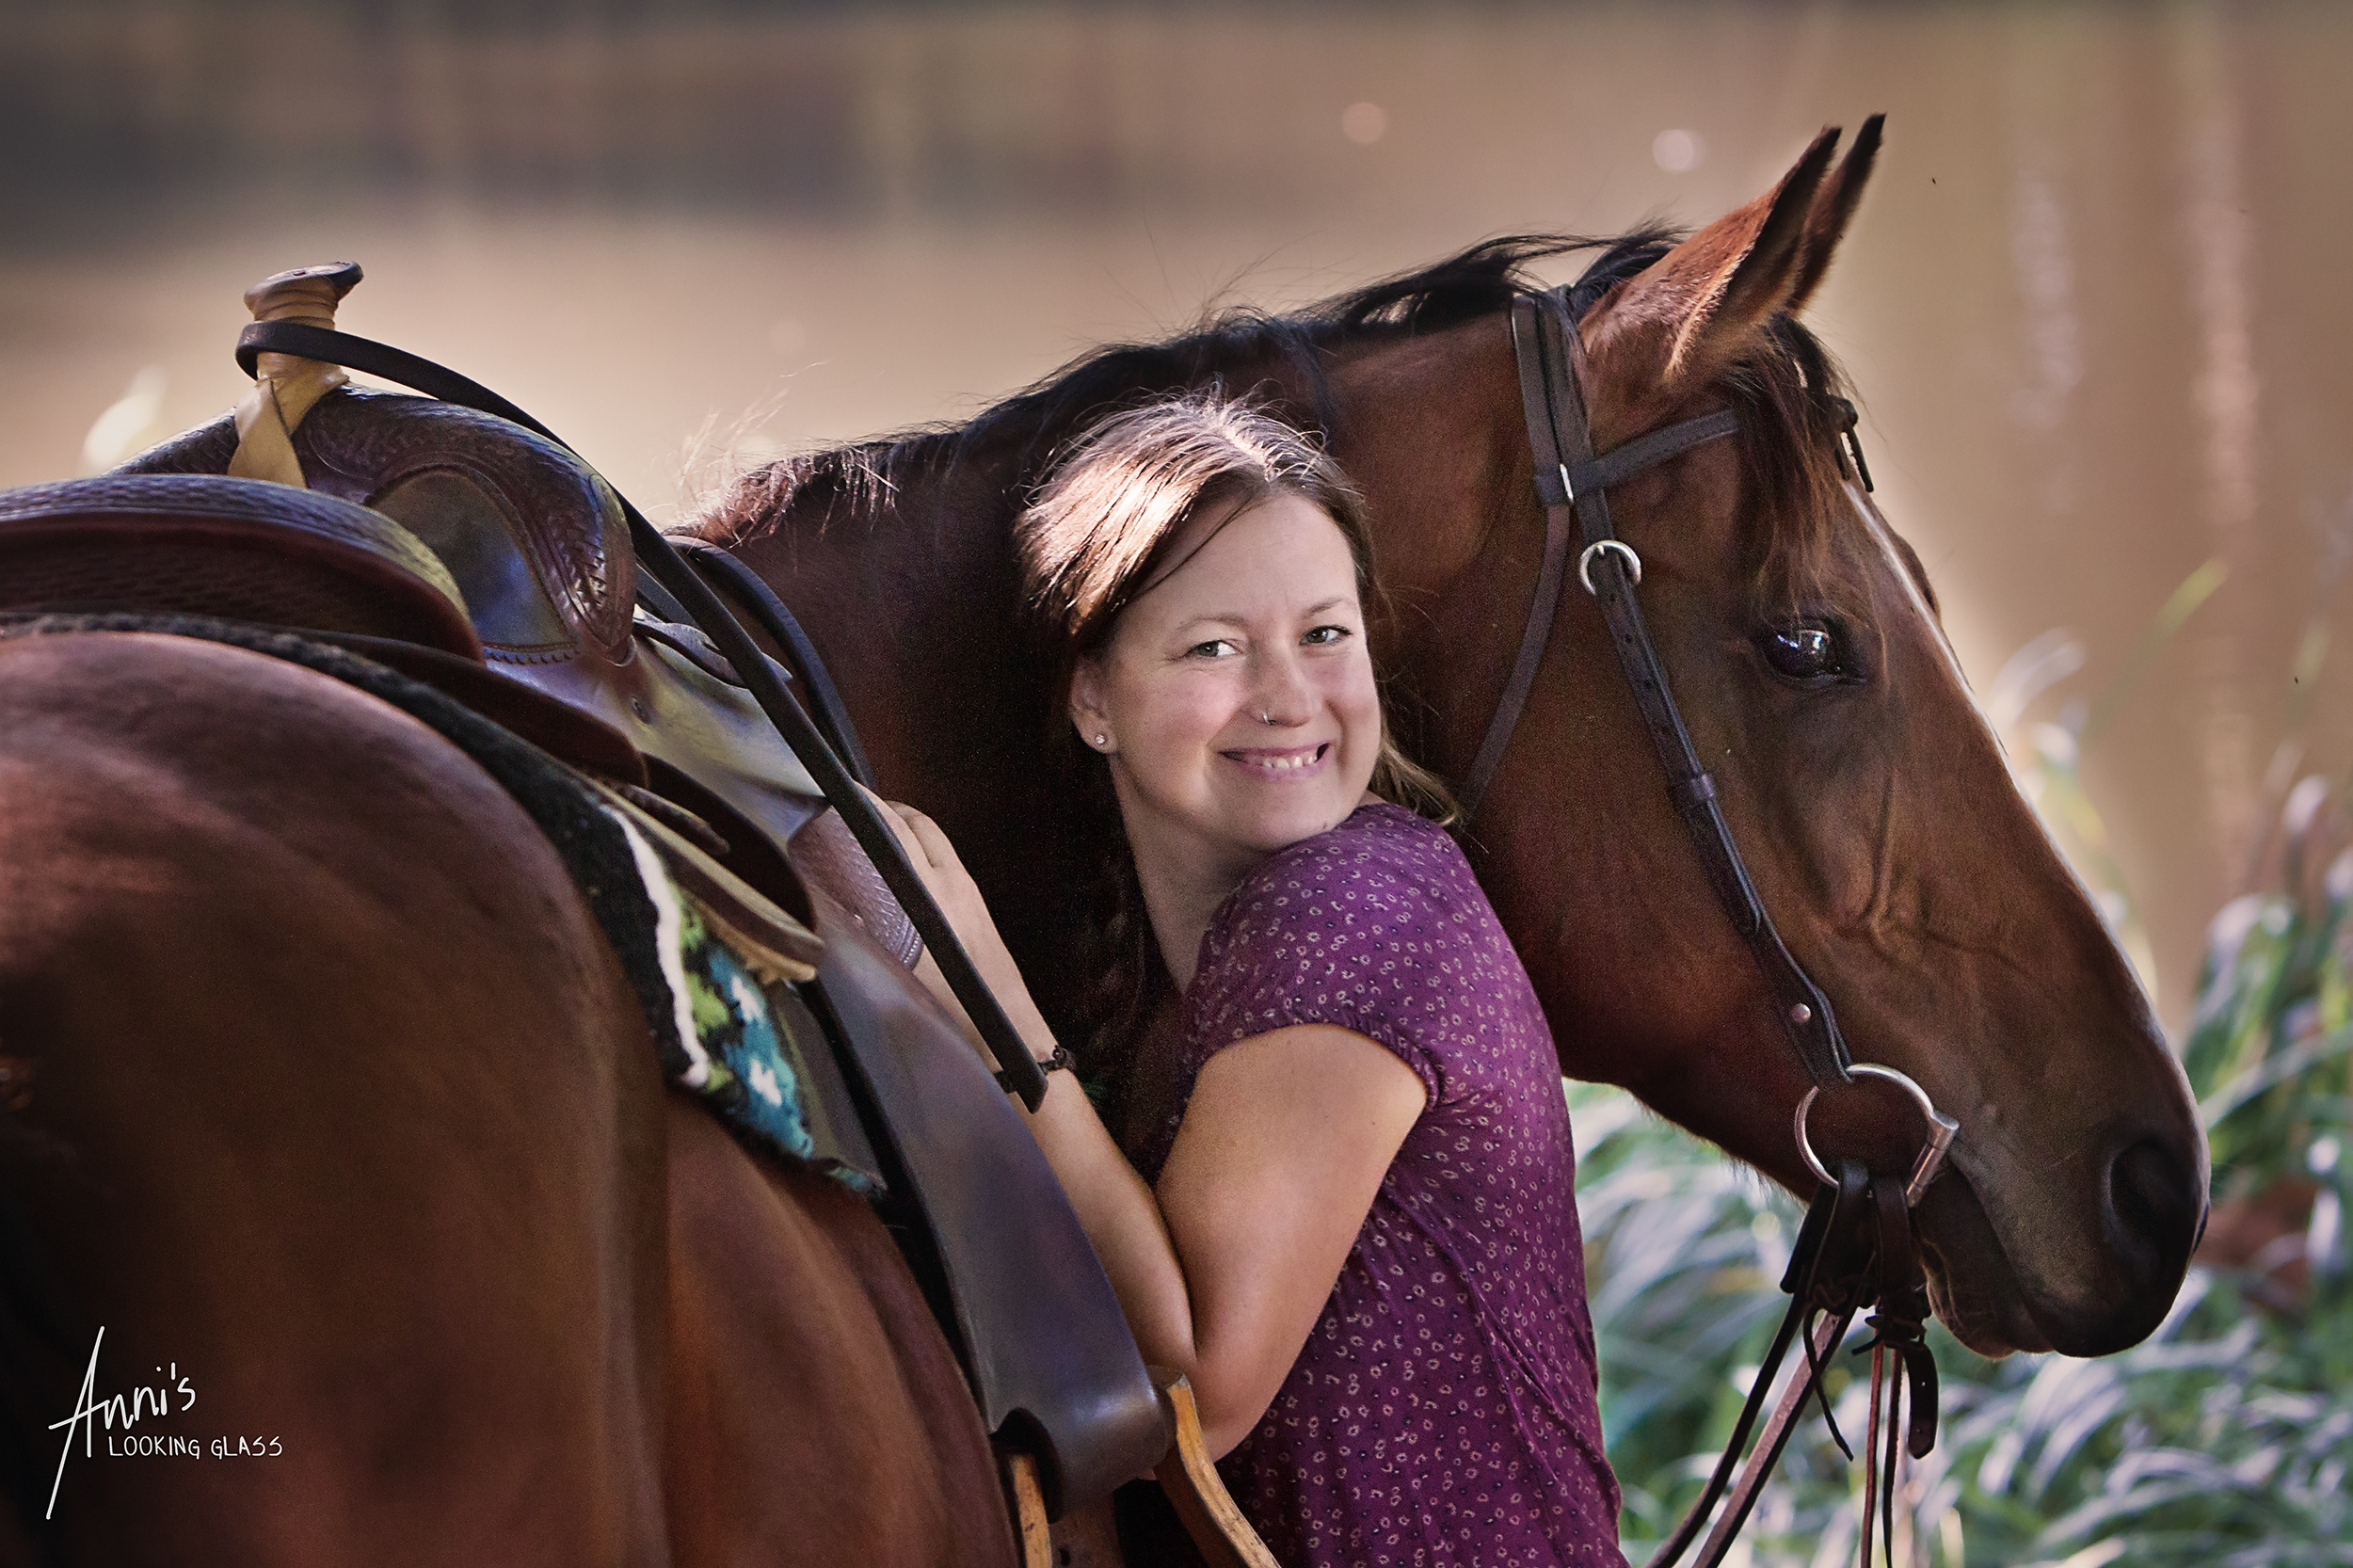 Julia works at the Banti-Cow Ranch, taking wonderful care of the horses and guests.